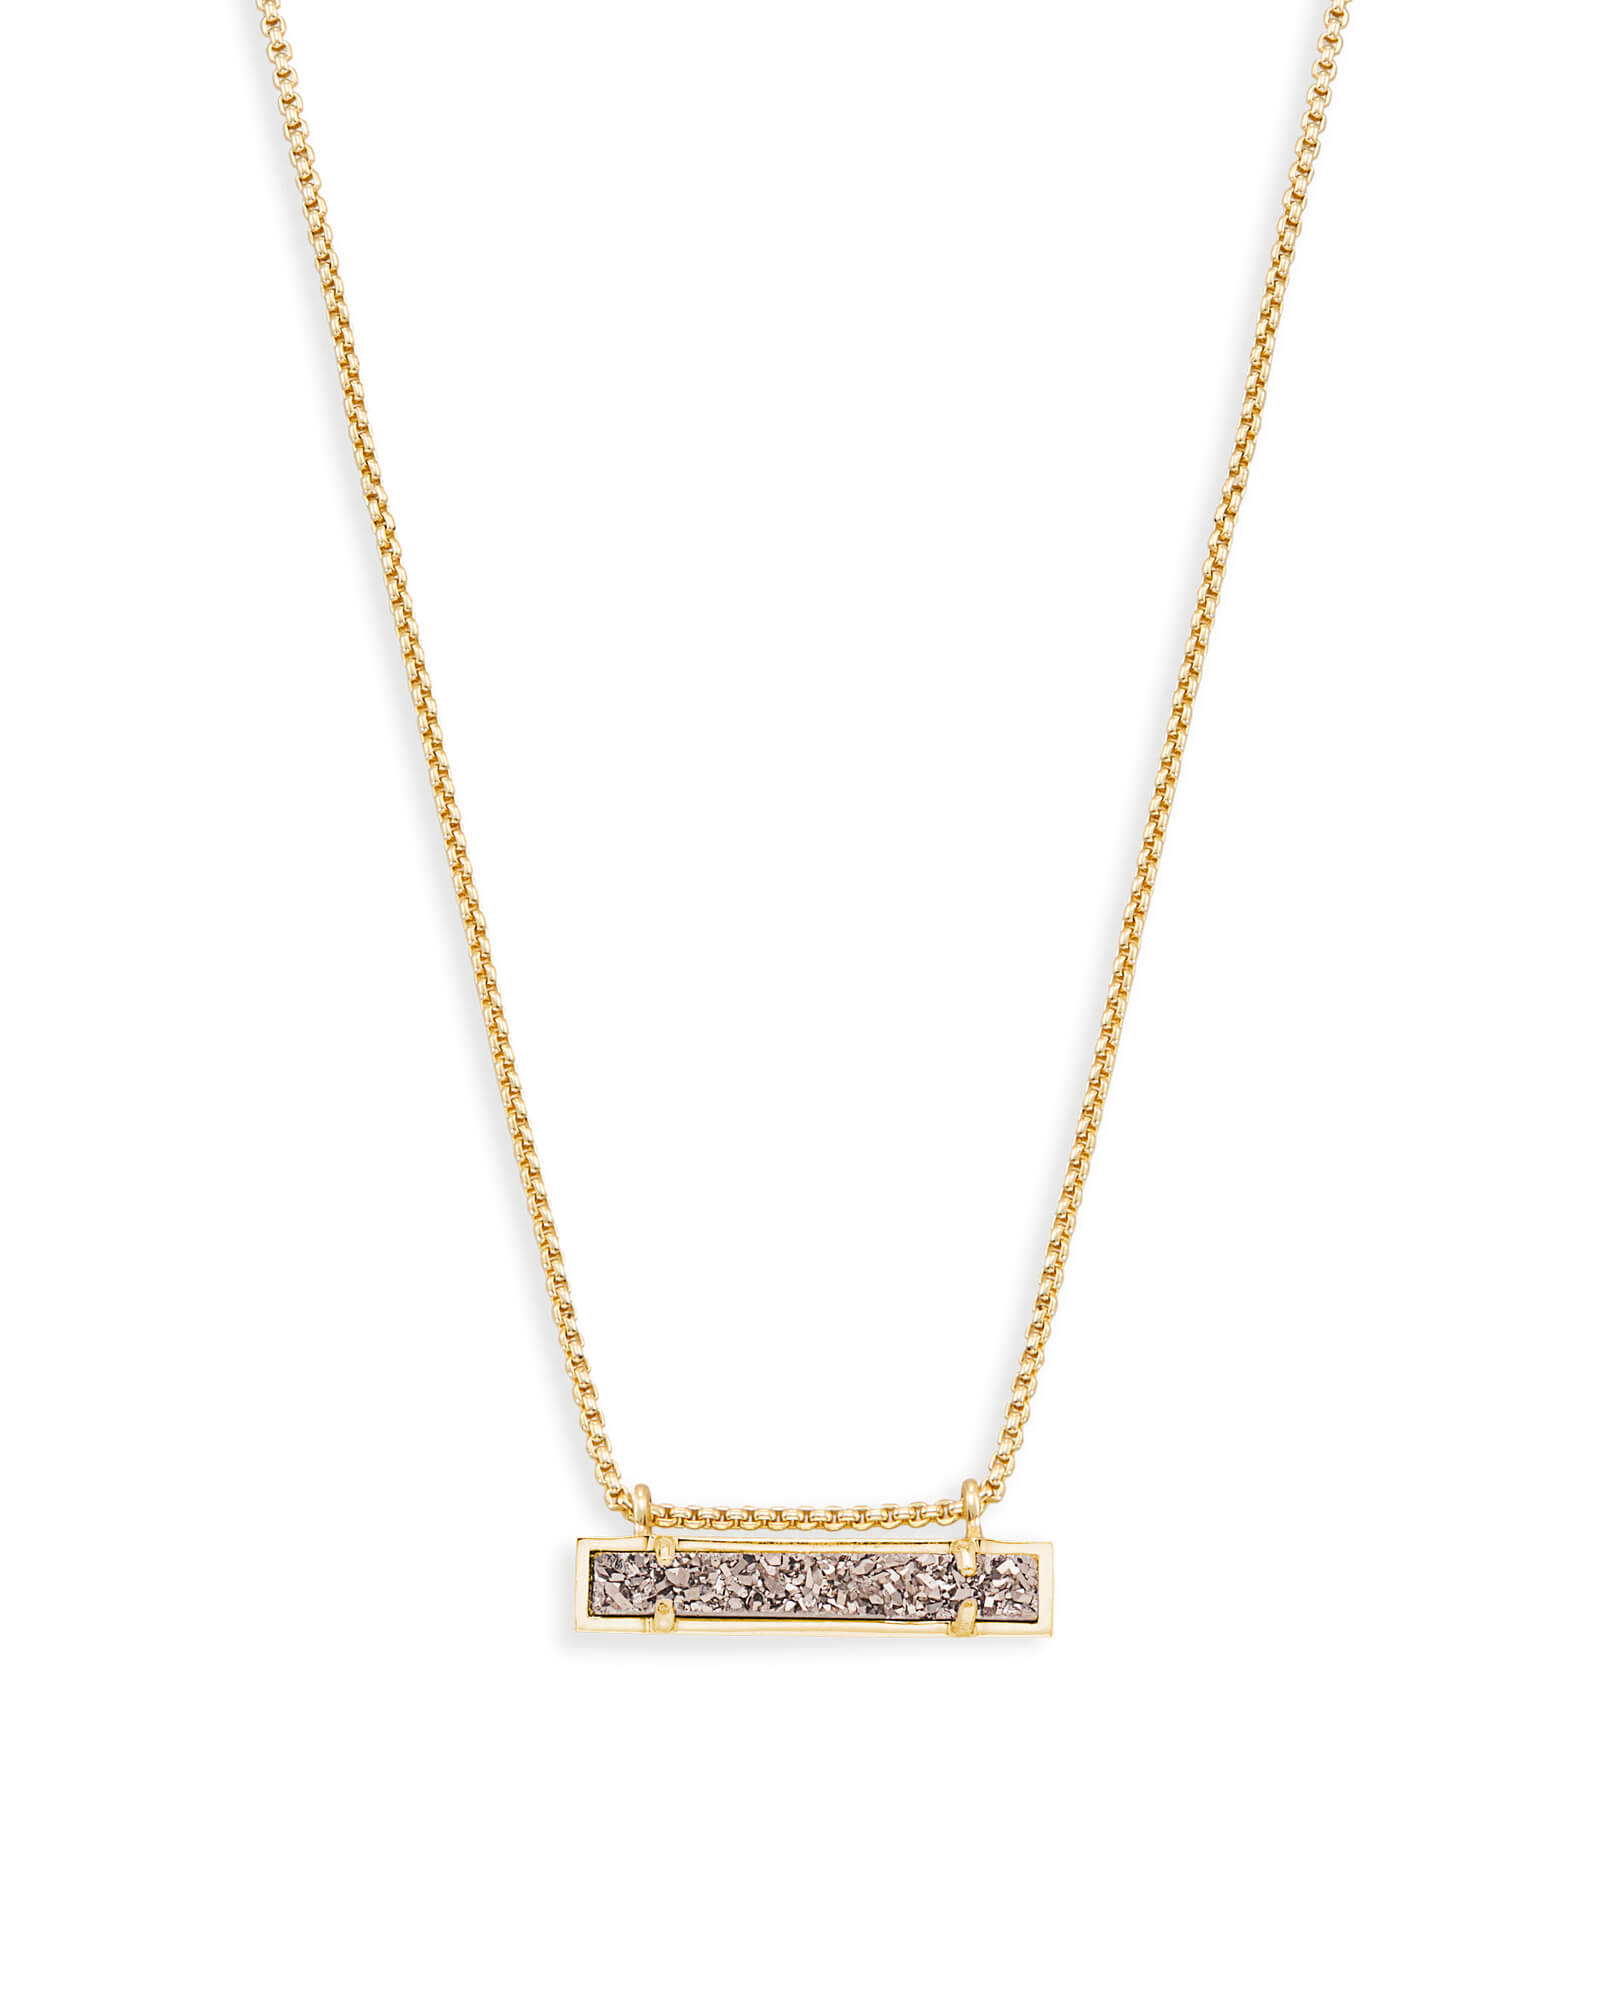 Leanor Gold Pendant Necklace in Platinum Drusy